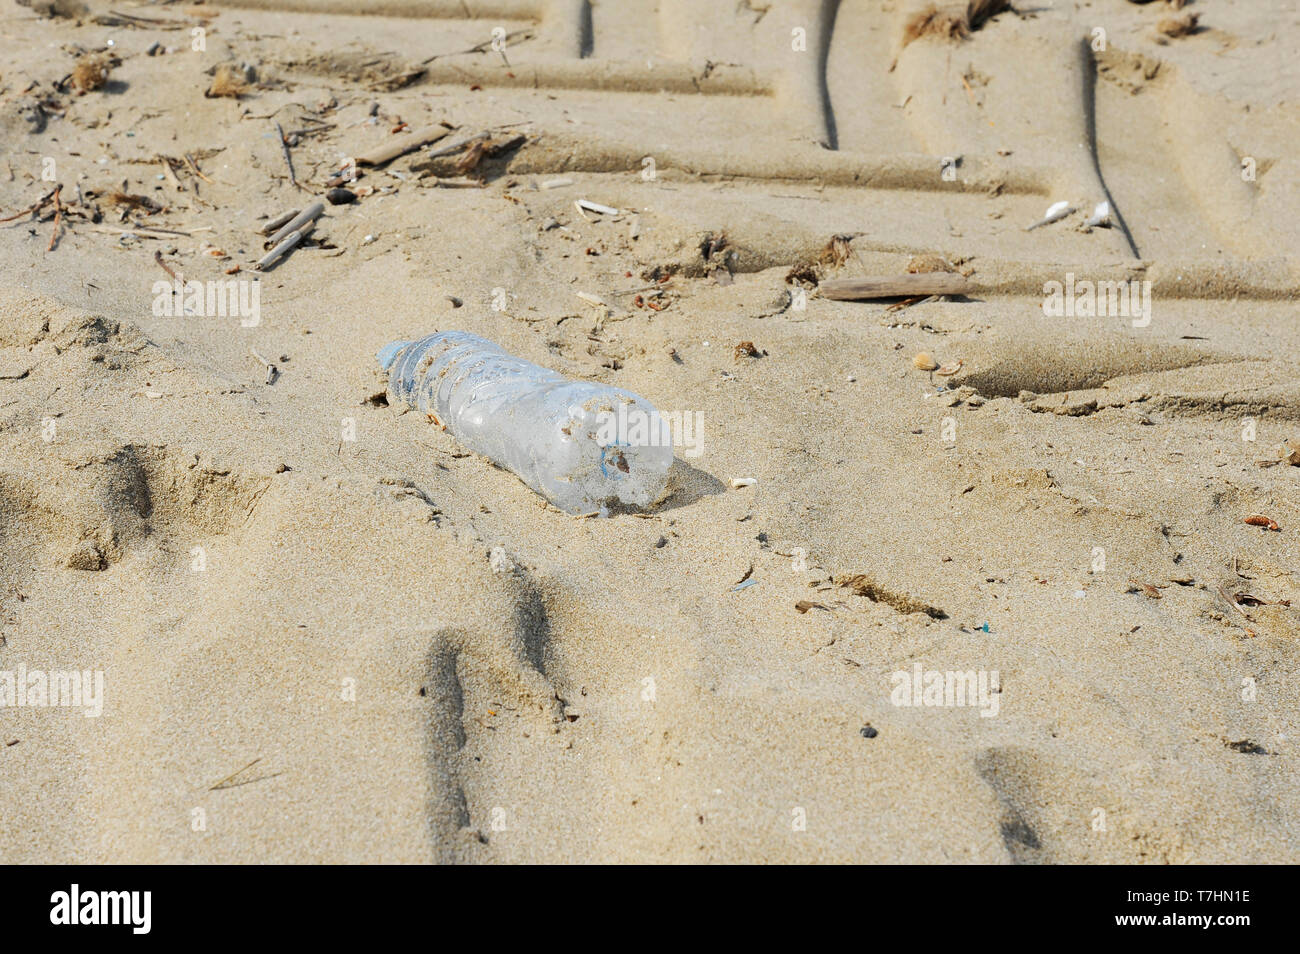 Plastic bottle on the sand. Garbage on the beach. Dirty sea shore. Environmental pollution. Save the Planet. Ecological problem. Nature theme. - Stock Image